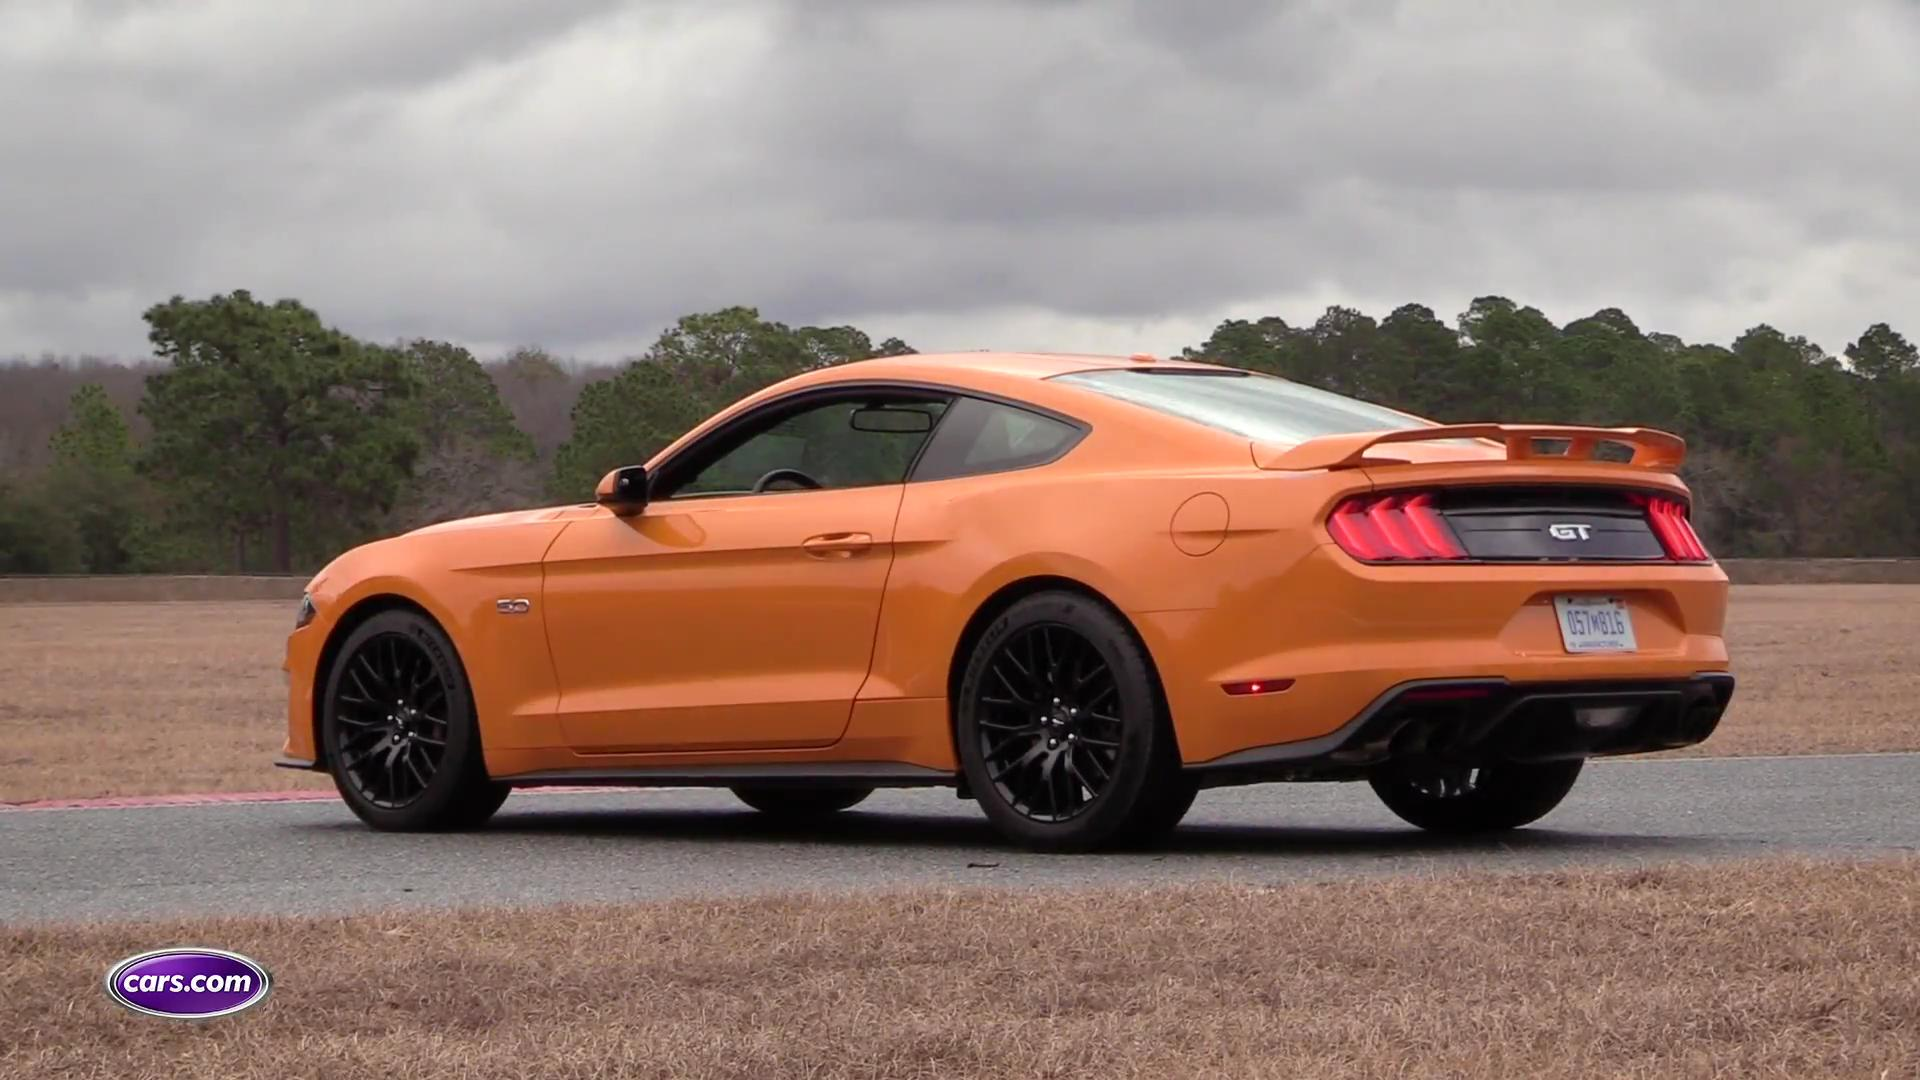 2018 Ford Mustang Expert Reviews, Specs and Photos | Cars.com